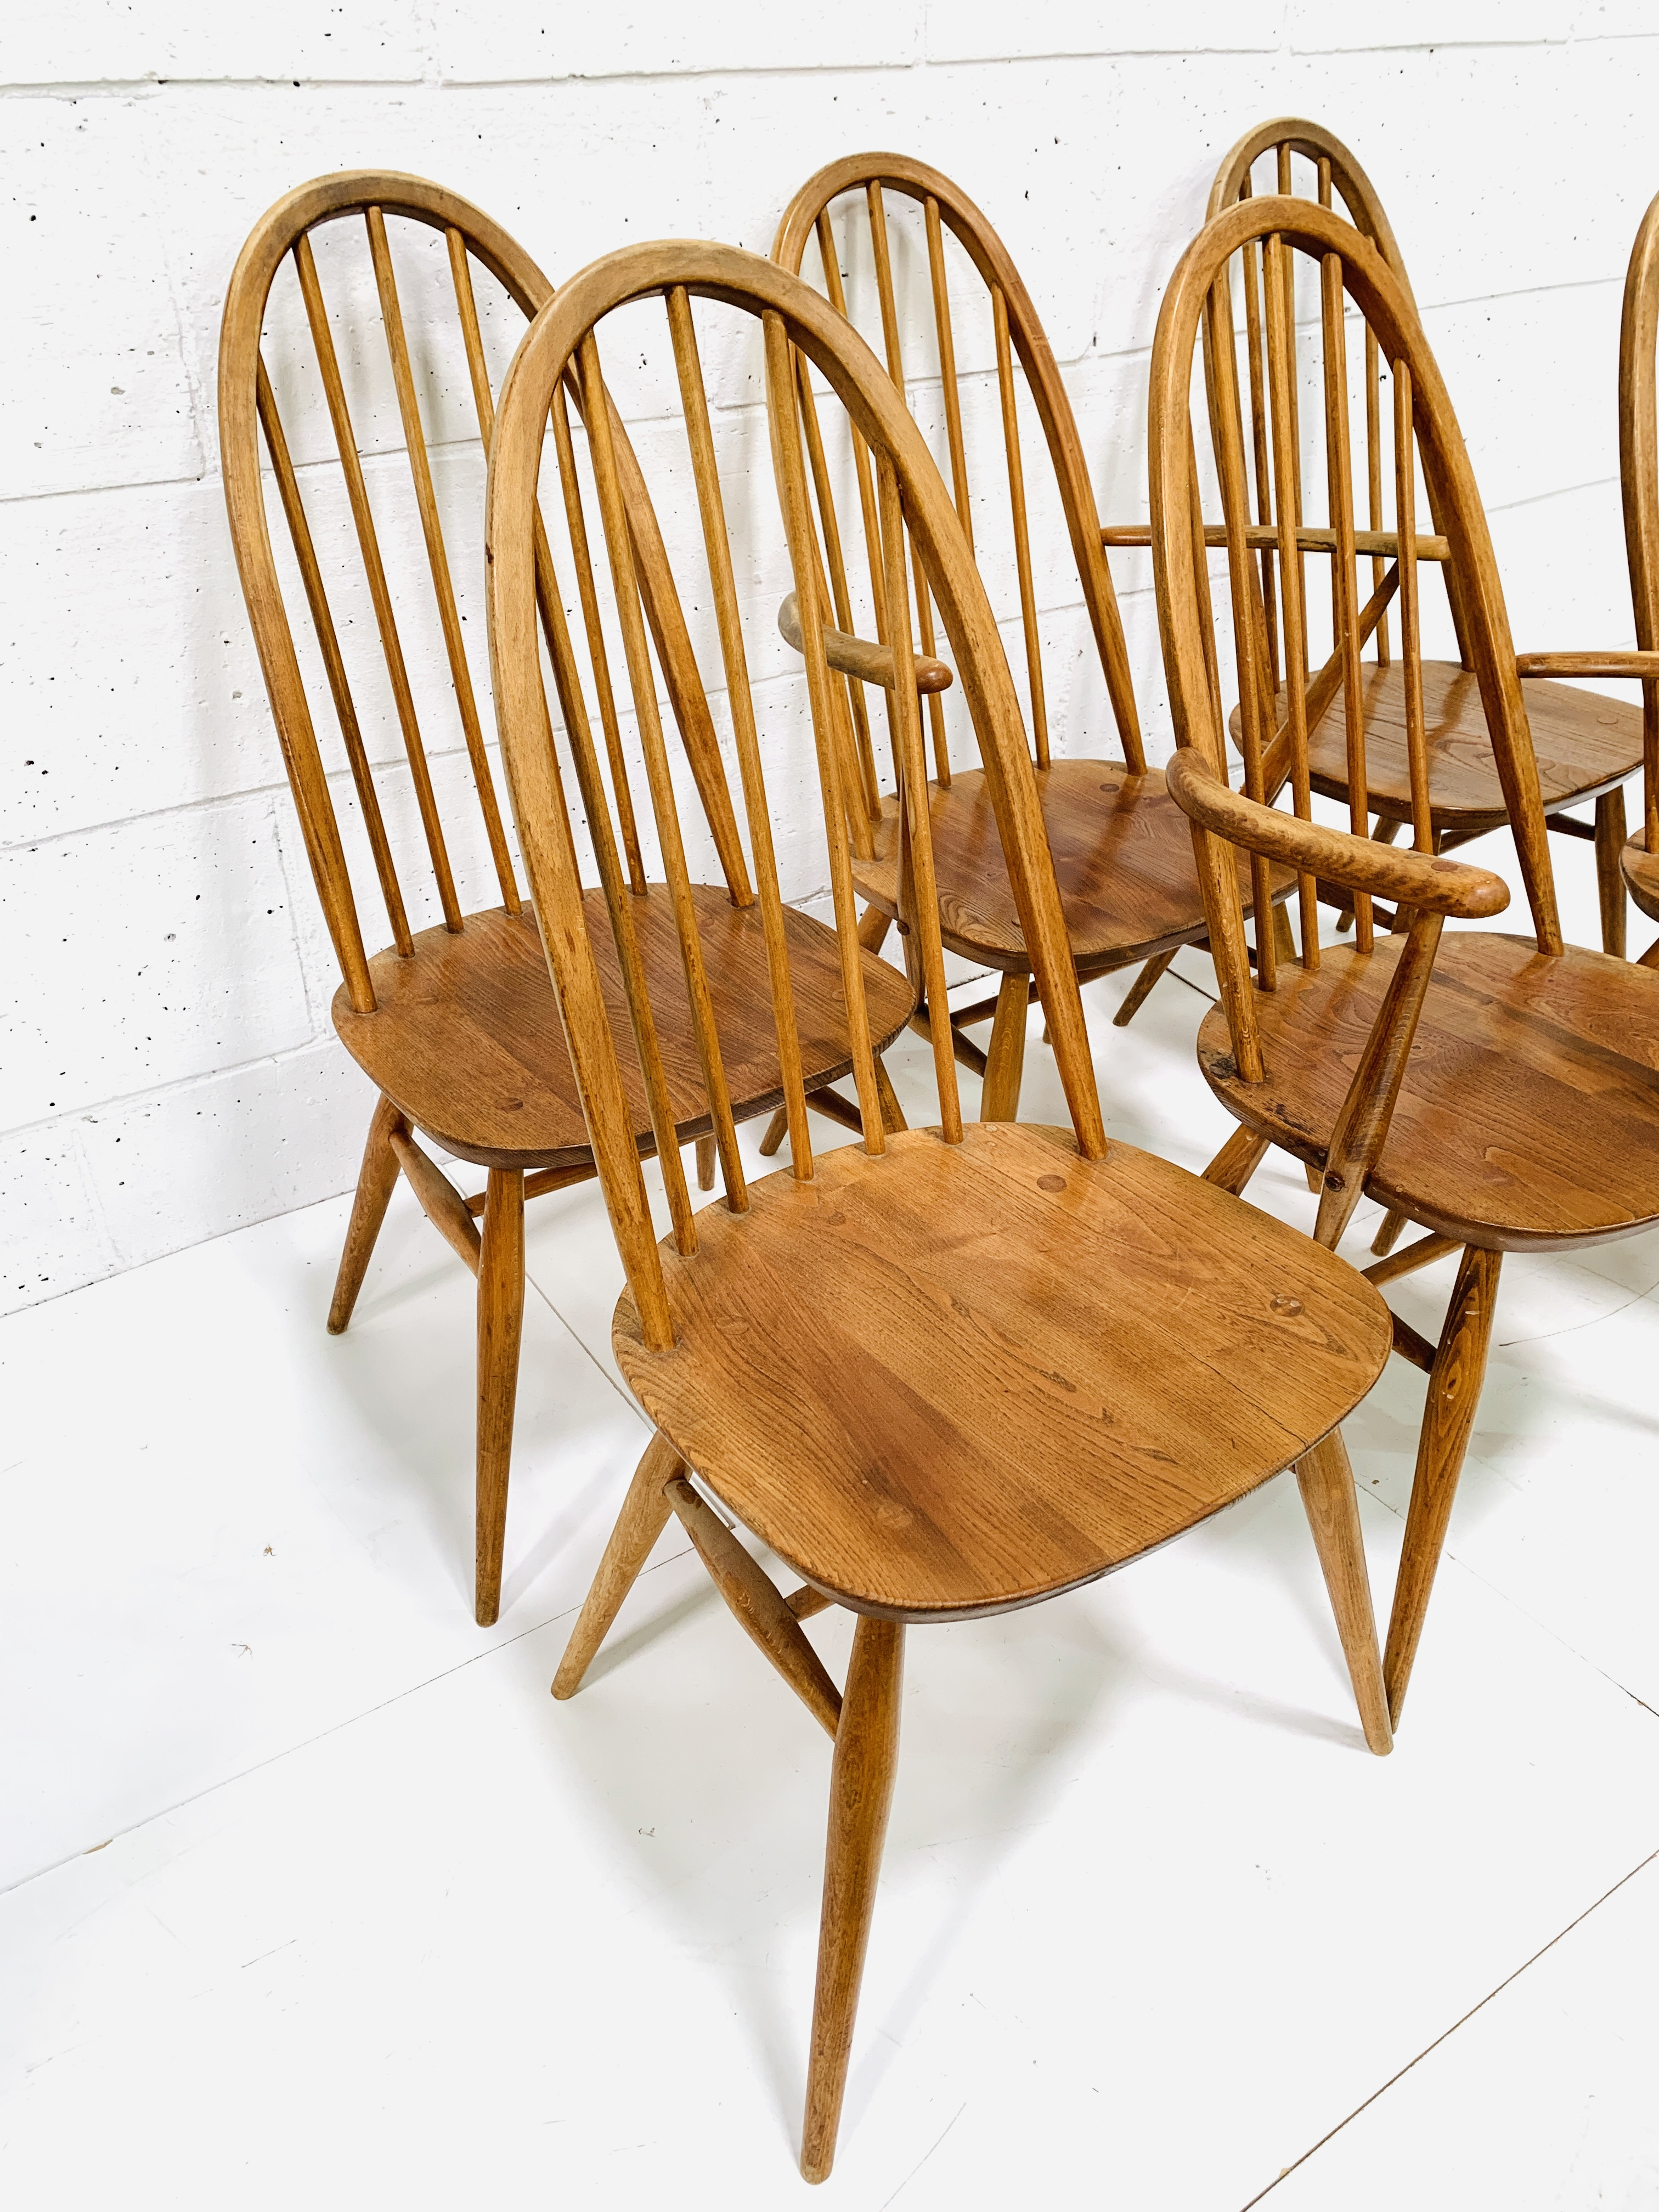 Set of six (4 + 2) Ercol high rail back dining chairs - Image 2 of 5